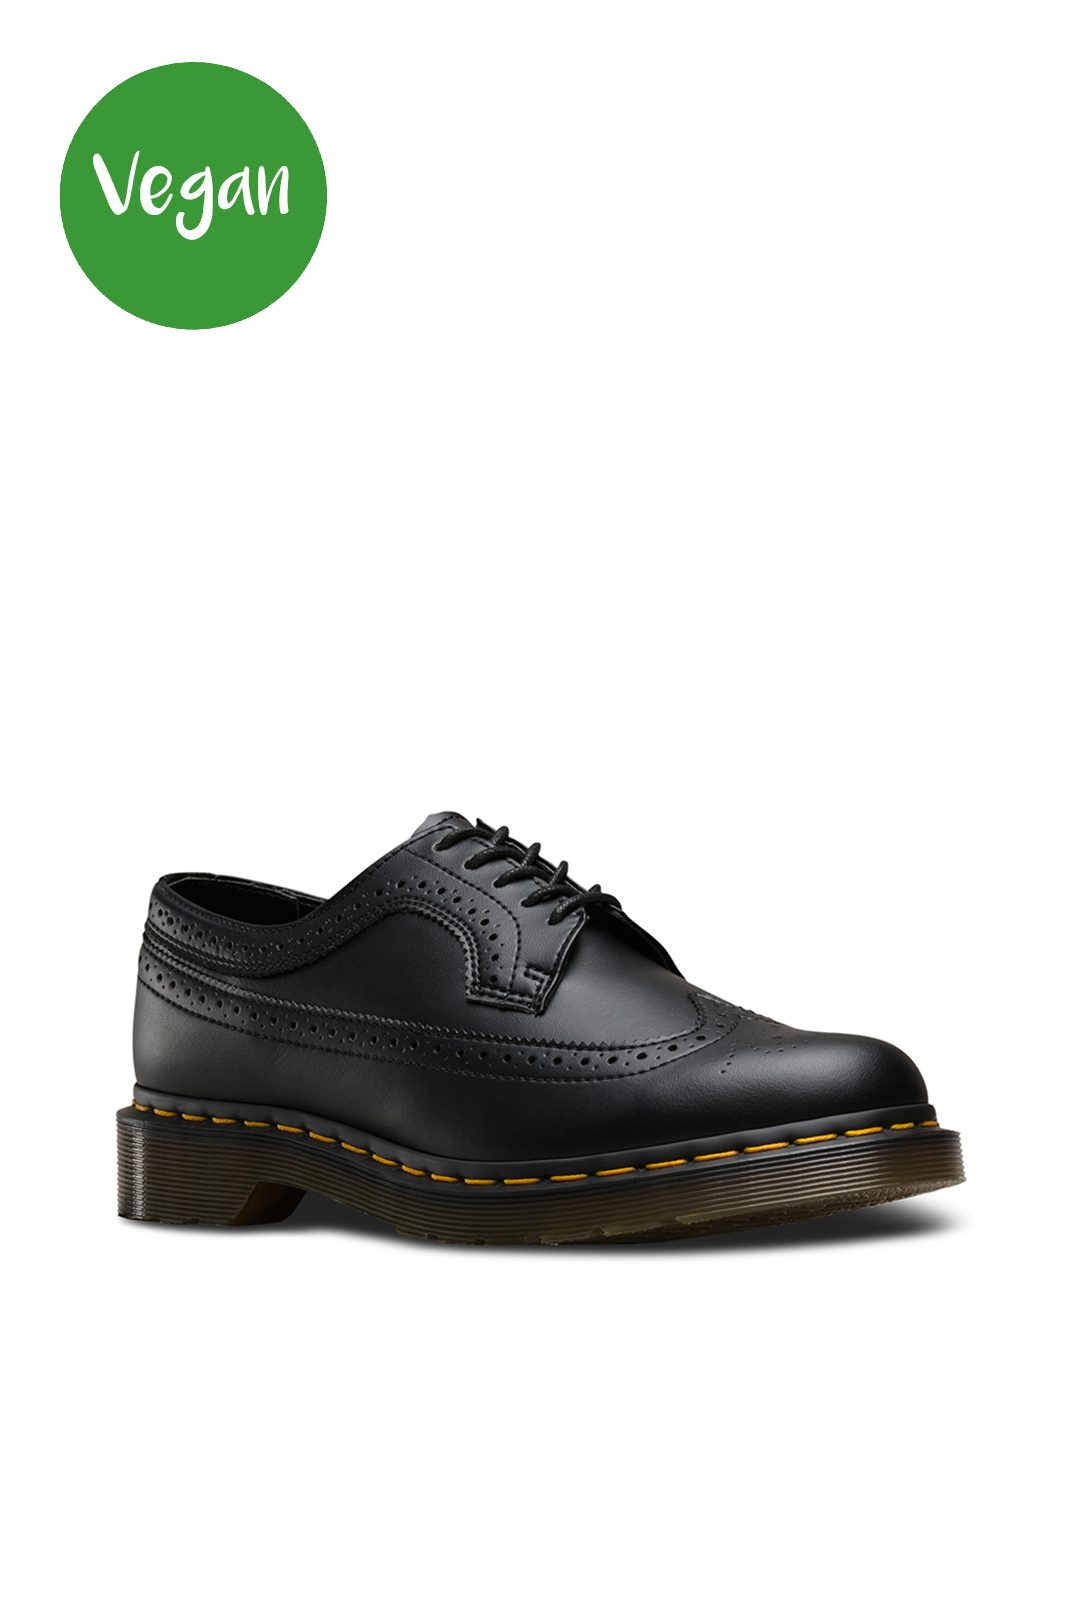 3989 Vegan Brouge Shoe Black